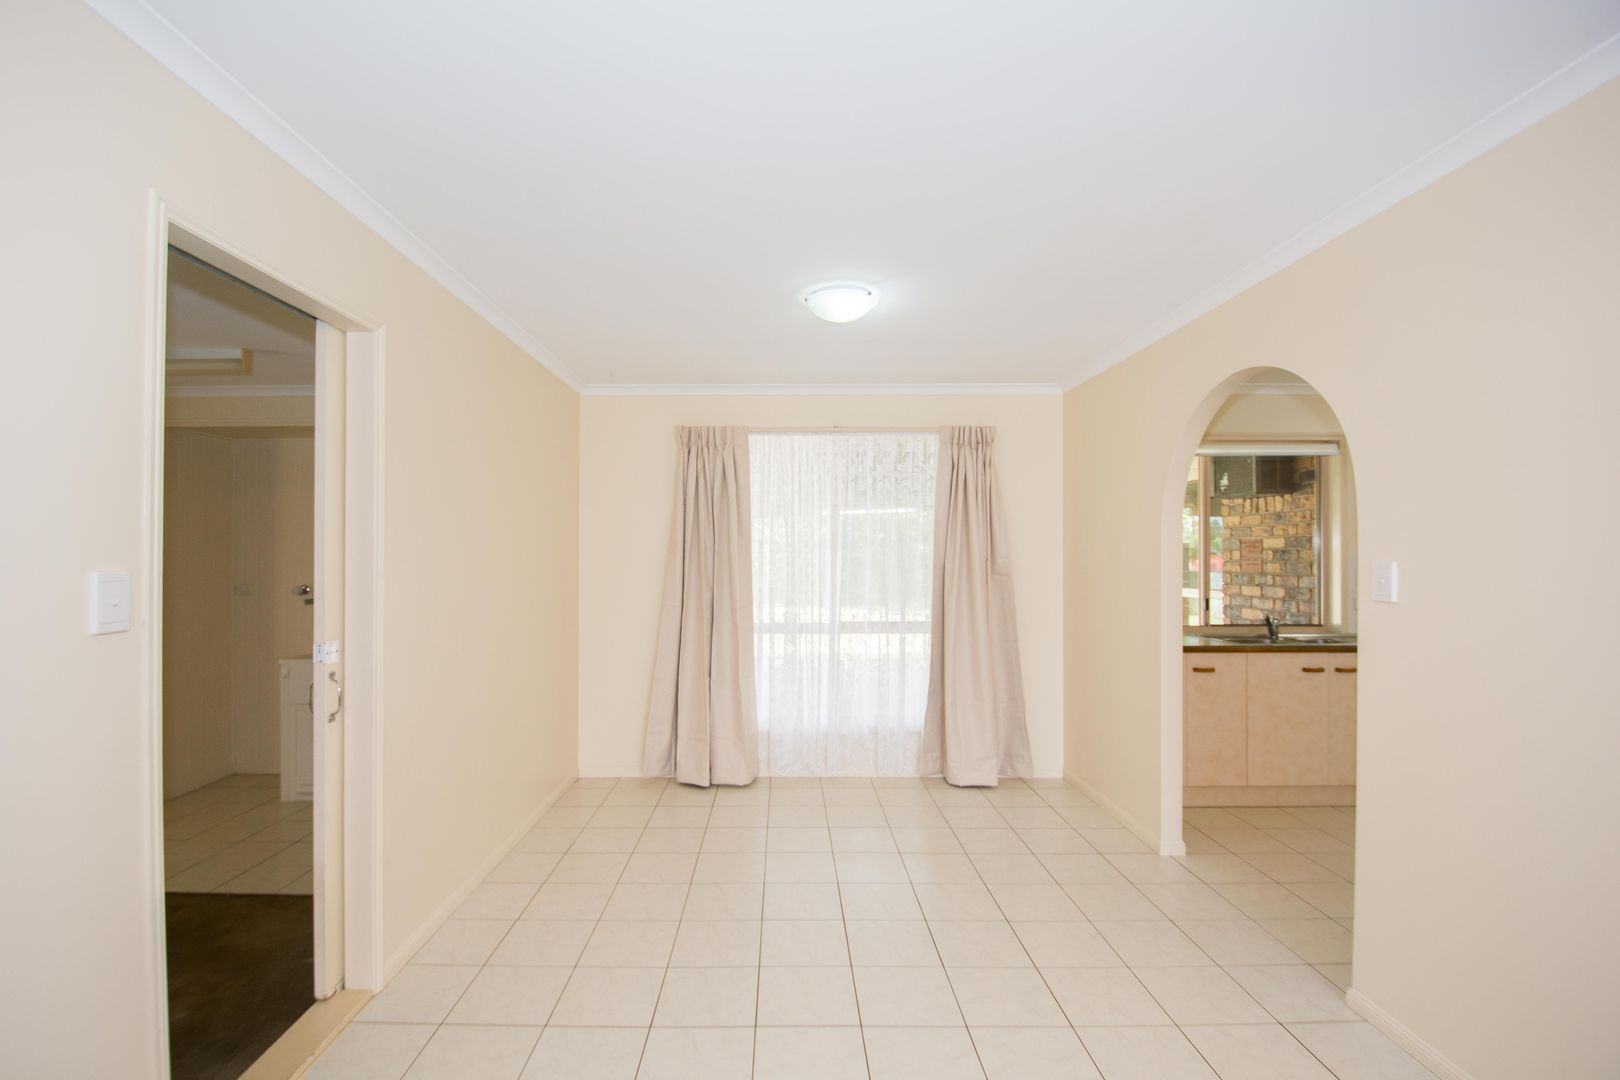 355 Woongarra Scenic Drive, Innes Park QLD 4670, Image 2